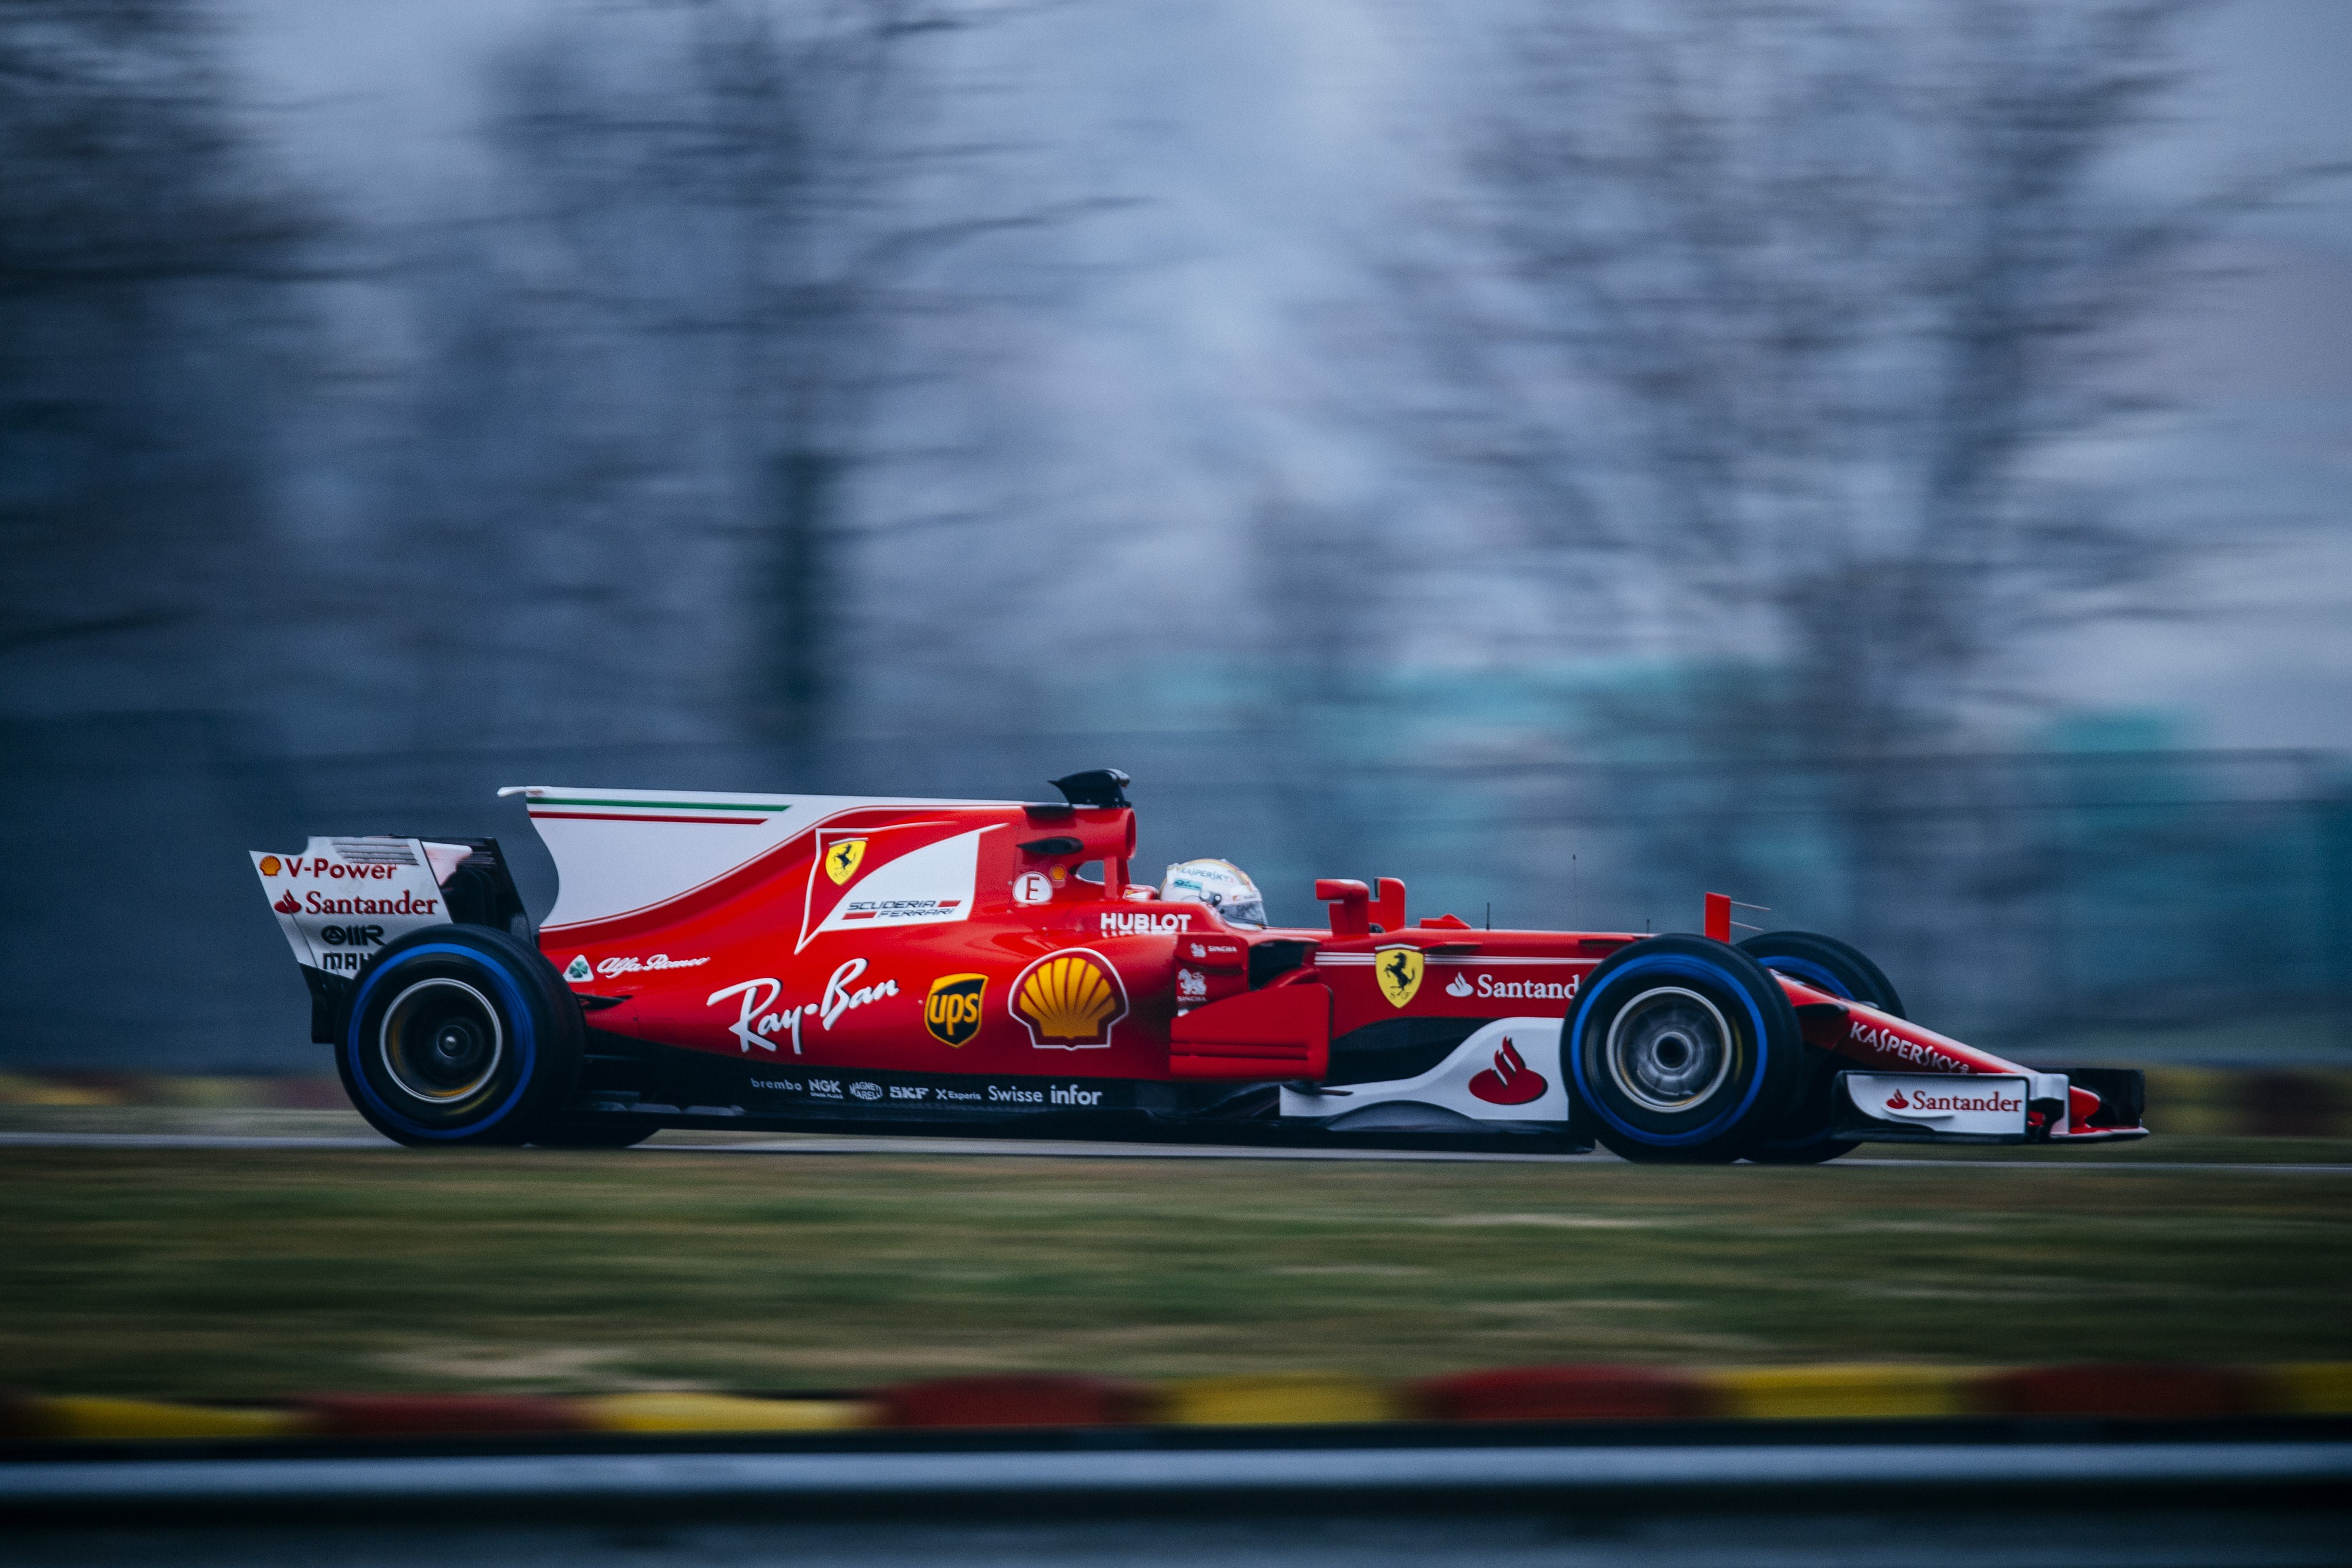 sebastian vettel trouve la ferrari sf70h immense et rapide saison 2017 formule 1 eurosport. Black Bedroom Furniture Sets. Home Design Ideas